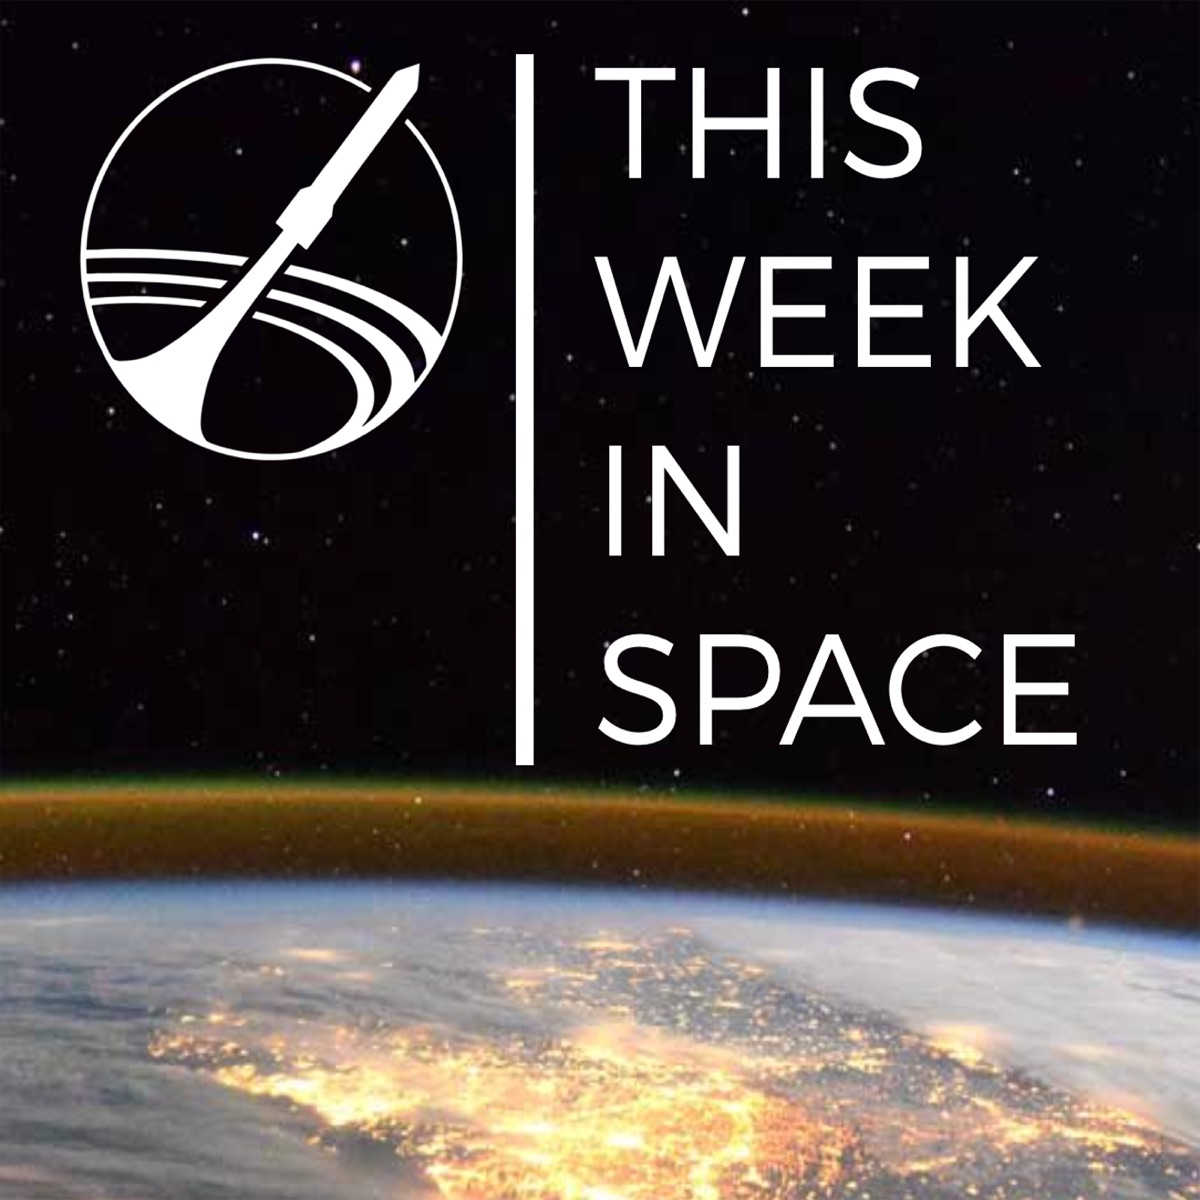 This Week In Space